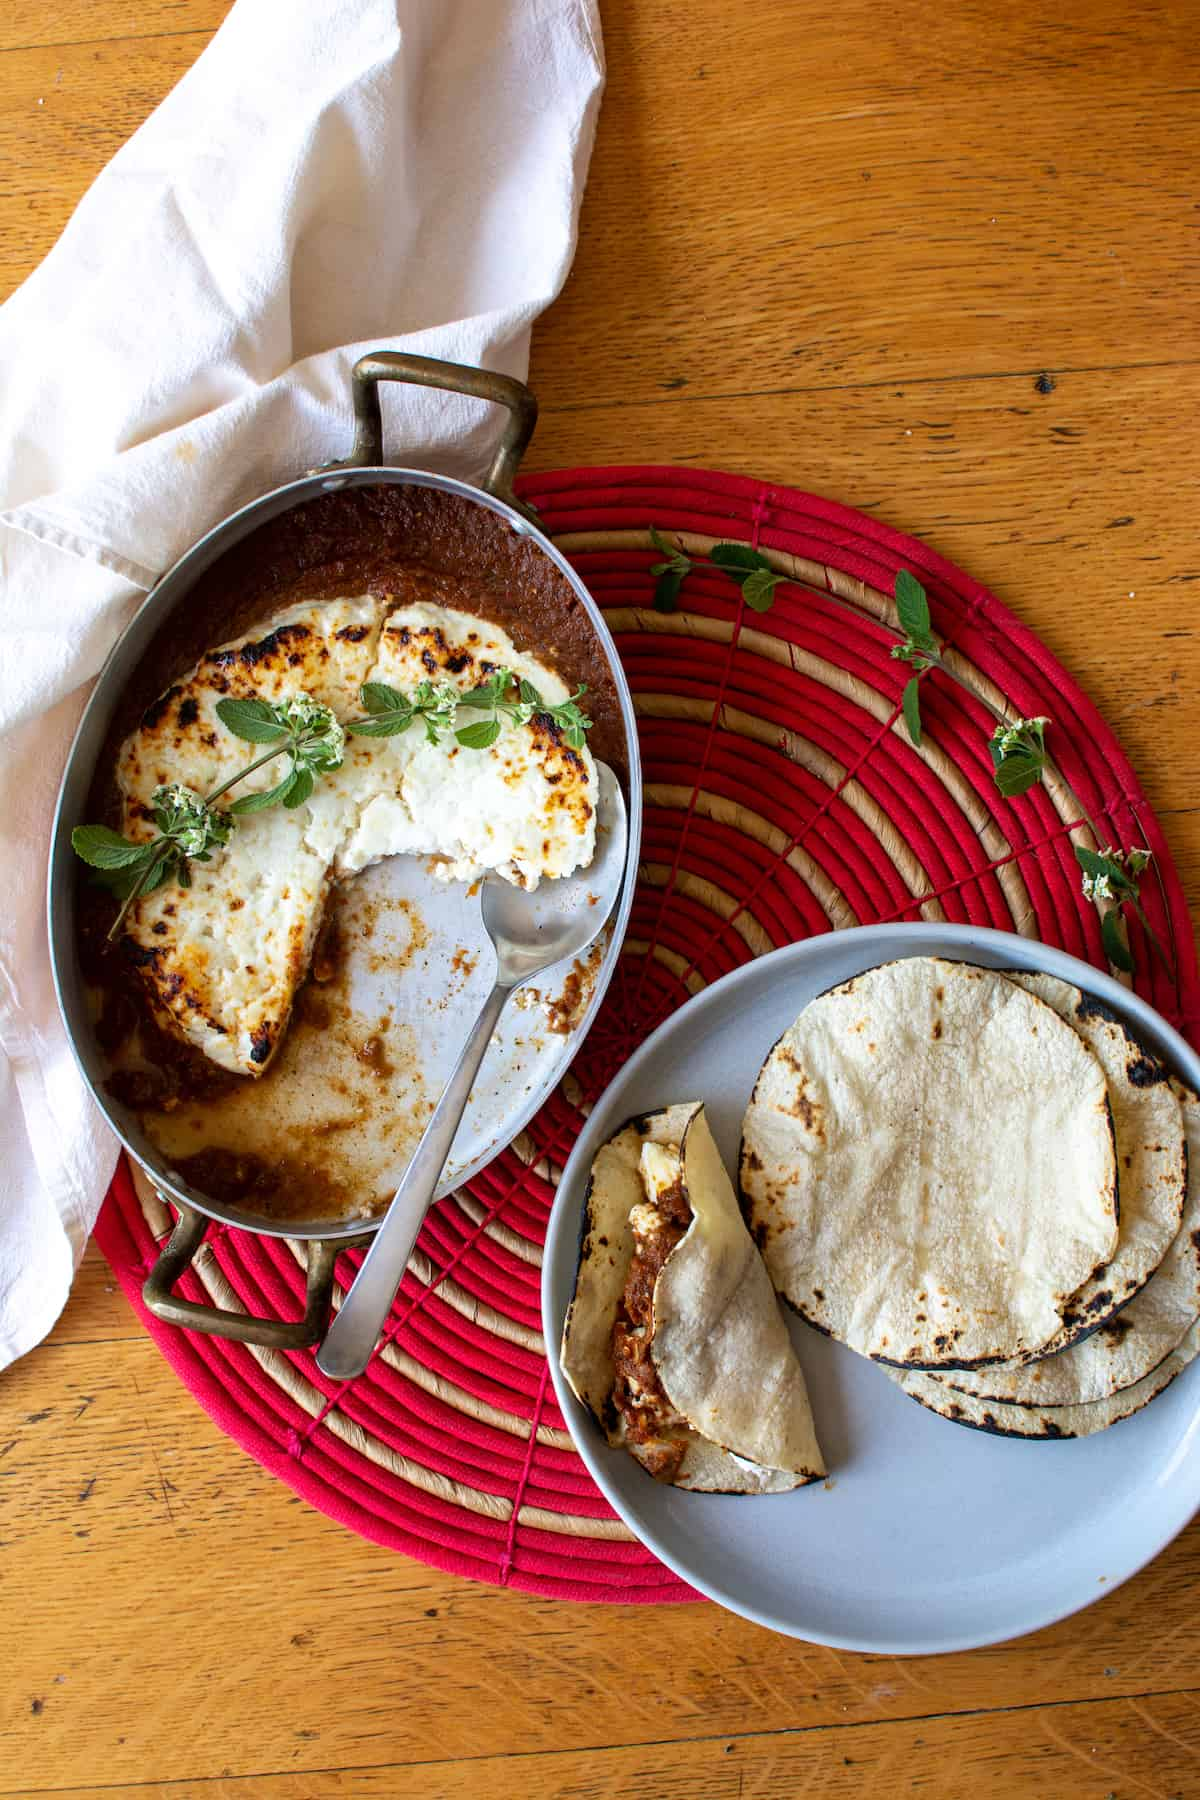 A copper dish of baked Panela cheese with red salsa sitting next to a plate of toasted corn tortillas with one taco made from the Panela cheese.